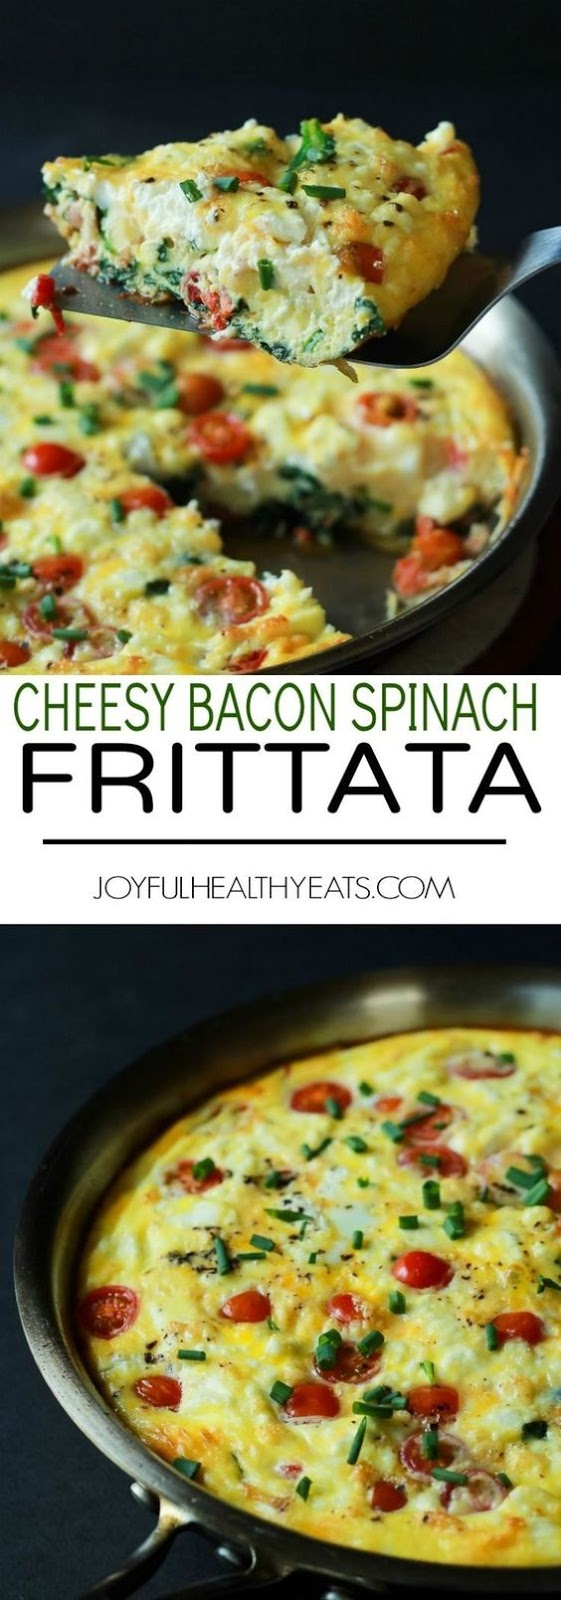 ROASTED RED PEPPER BACON GOAT CHEESE FRITTATA